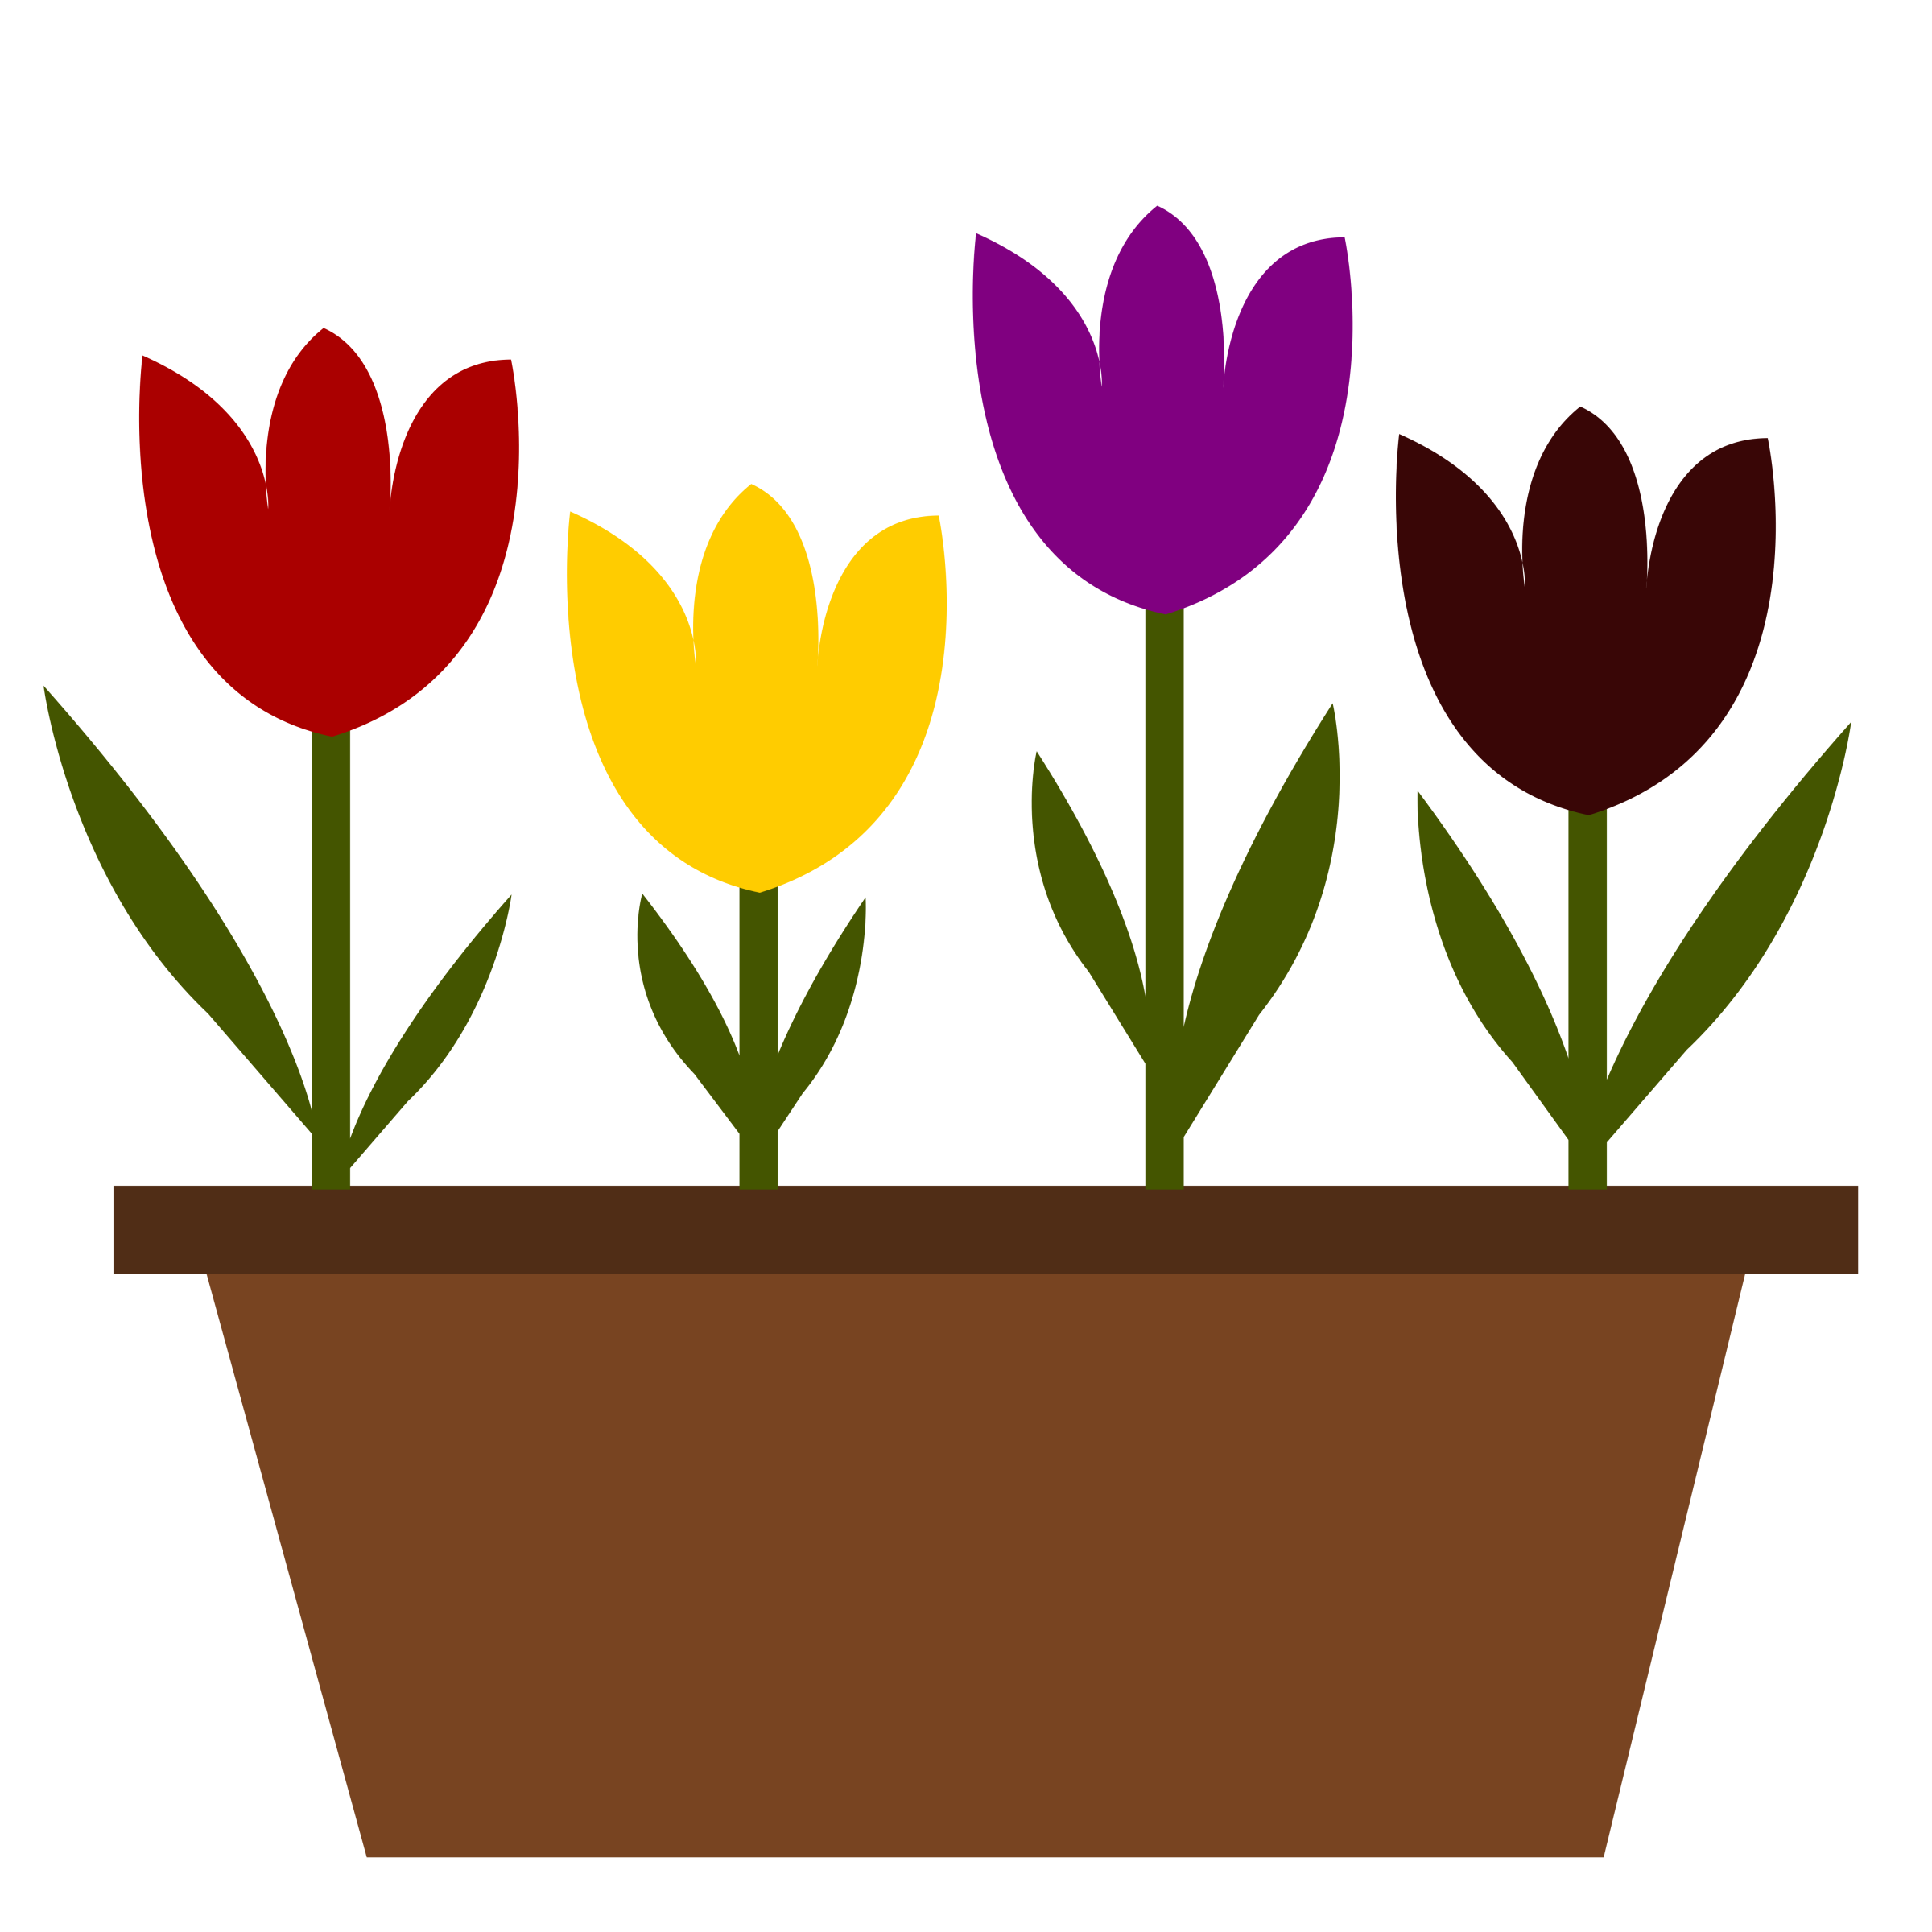 Poppy clipart potplant. Tulips in a pot